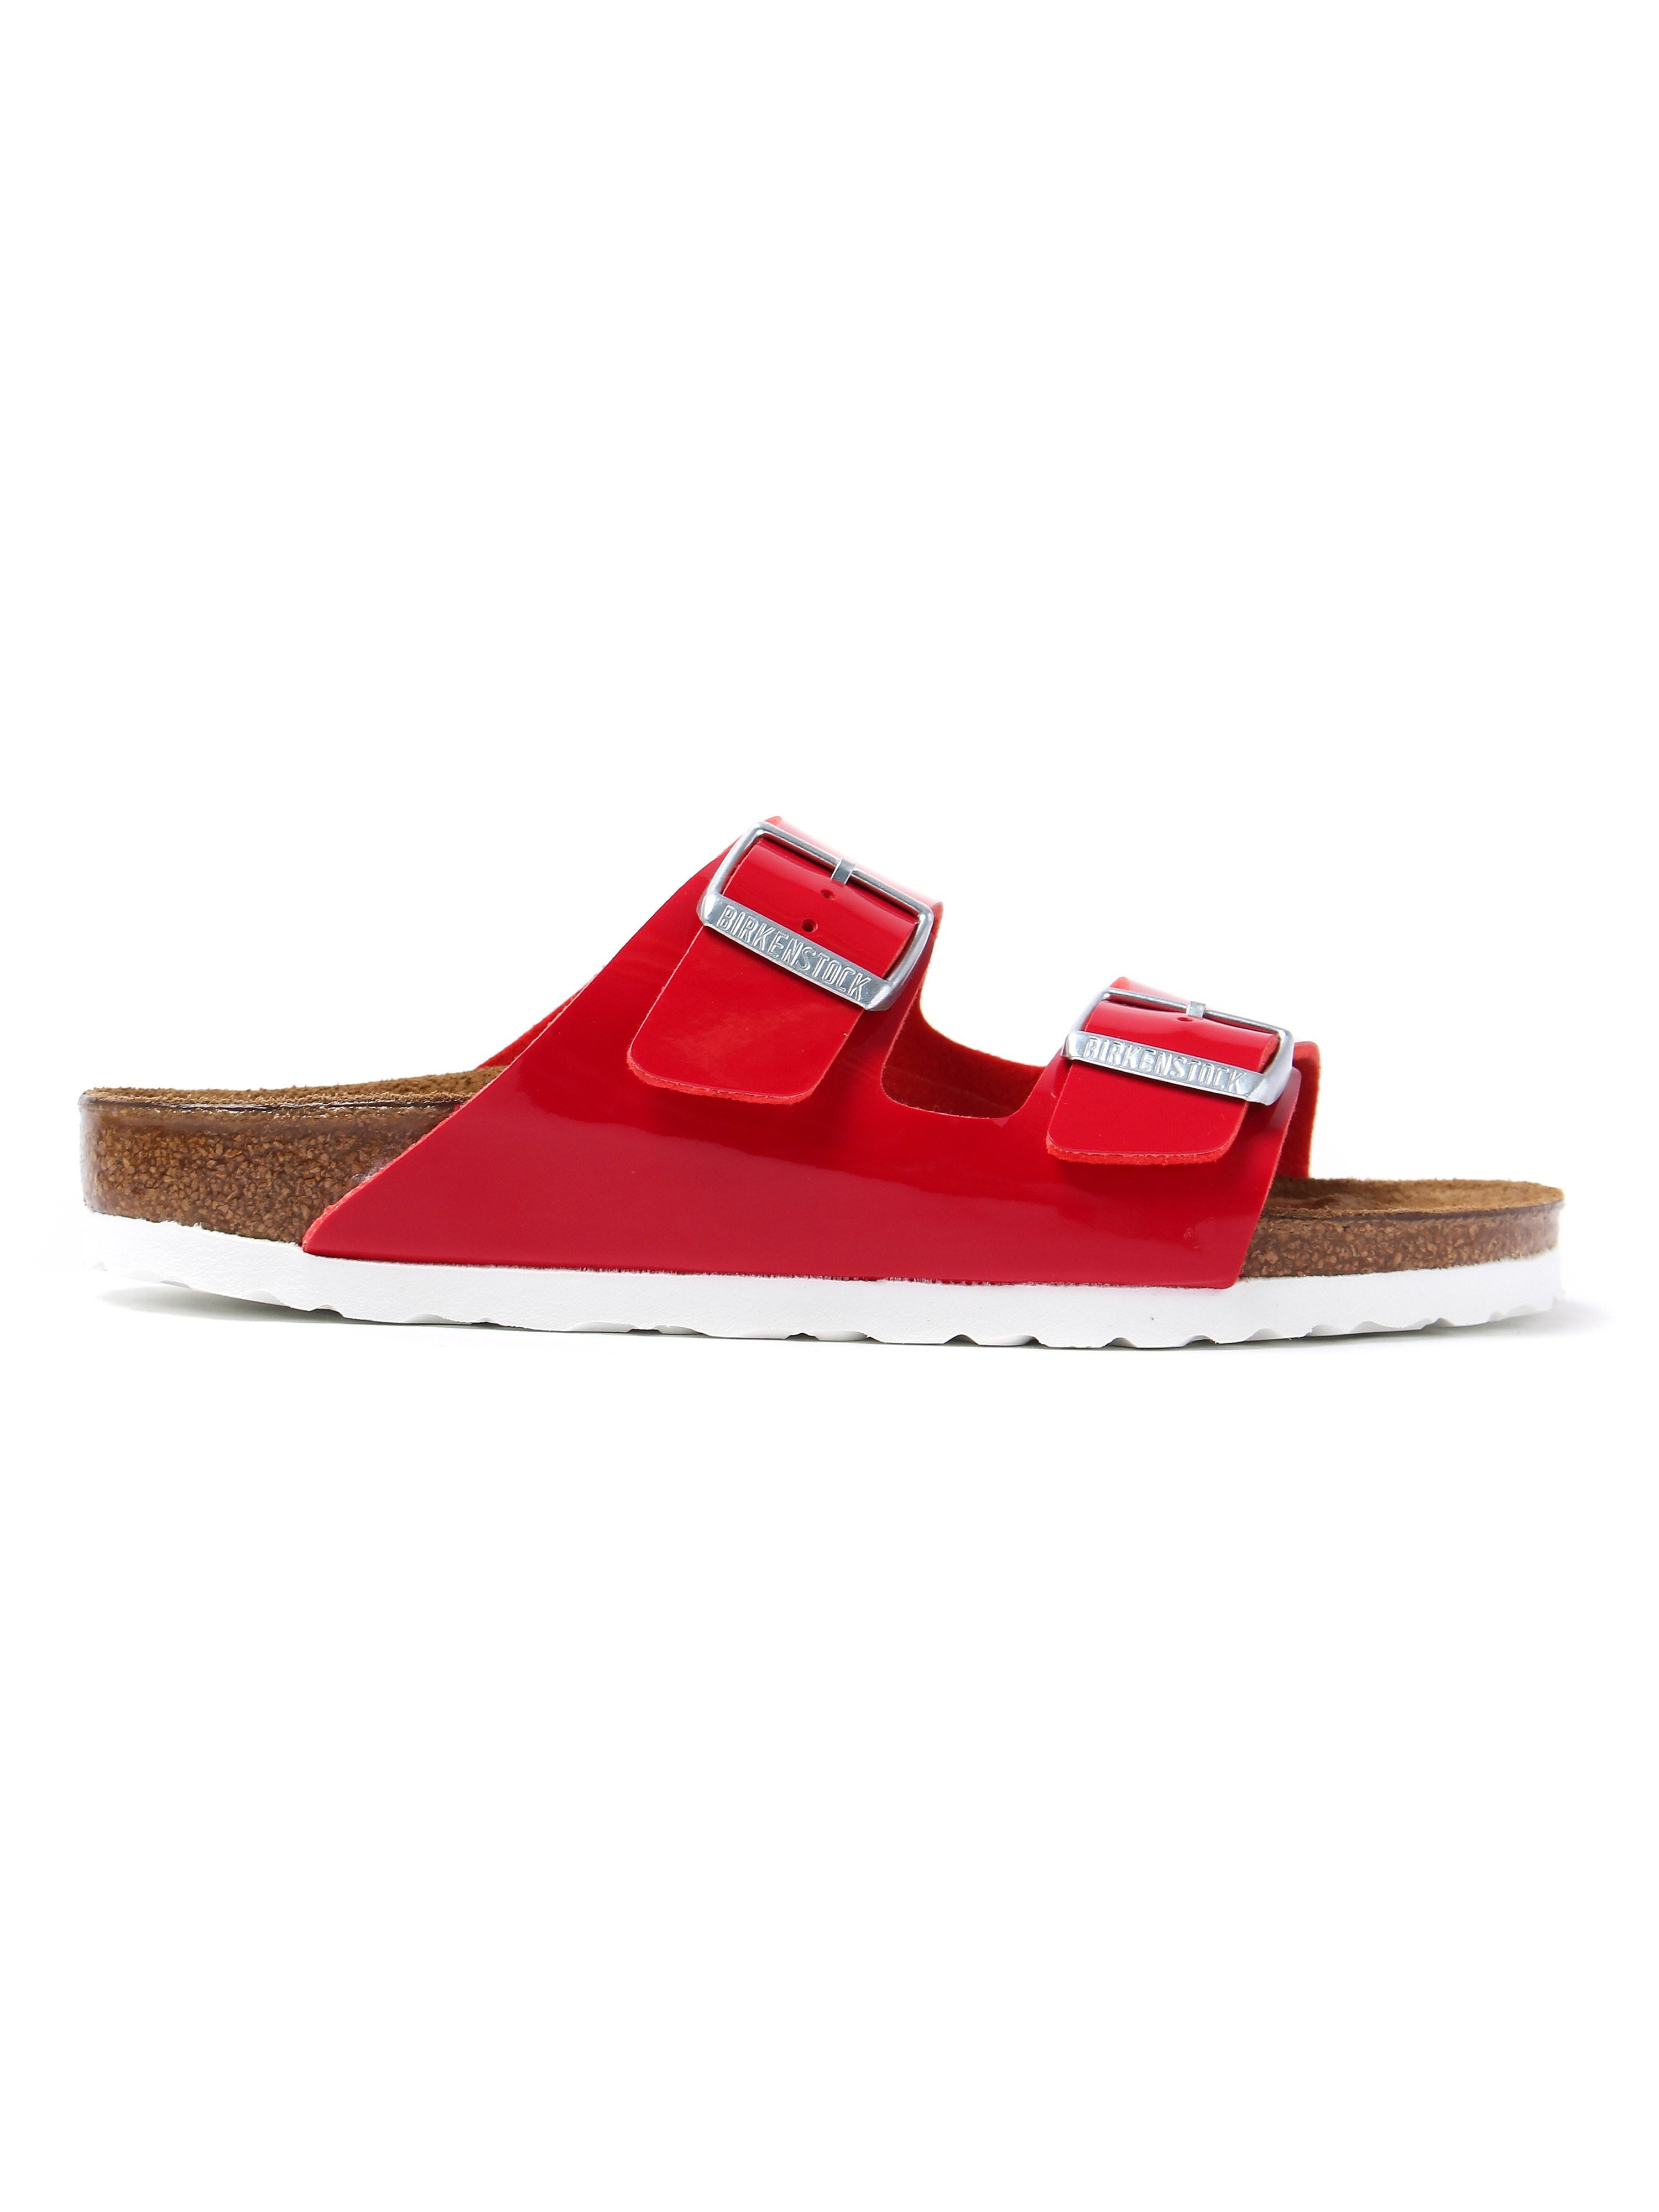 Birkenstock Women's Arizona Narrow Fit Sandals - Tango Red Patent Leather